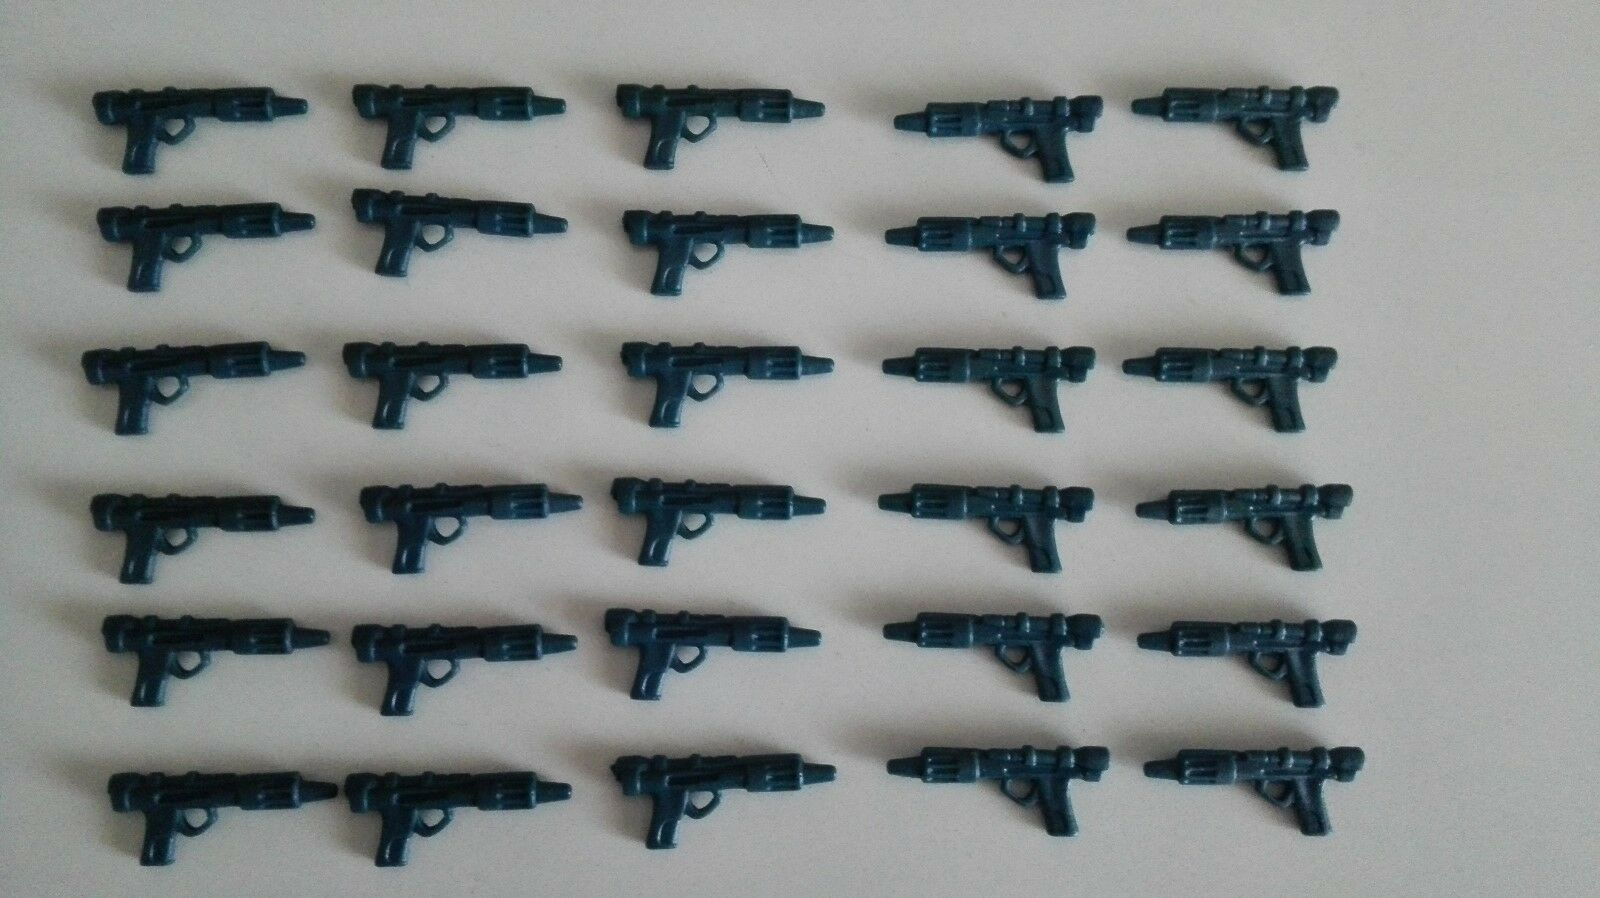 BESPIN BLASTER GUN EMPIRE VINTAGE LIKE REPRO DEALER LOT X25 AAA+++ QUALITY